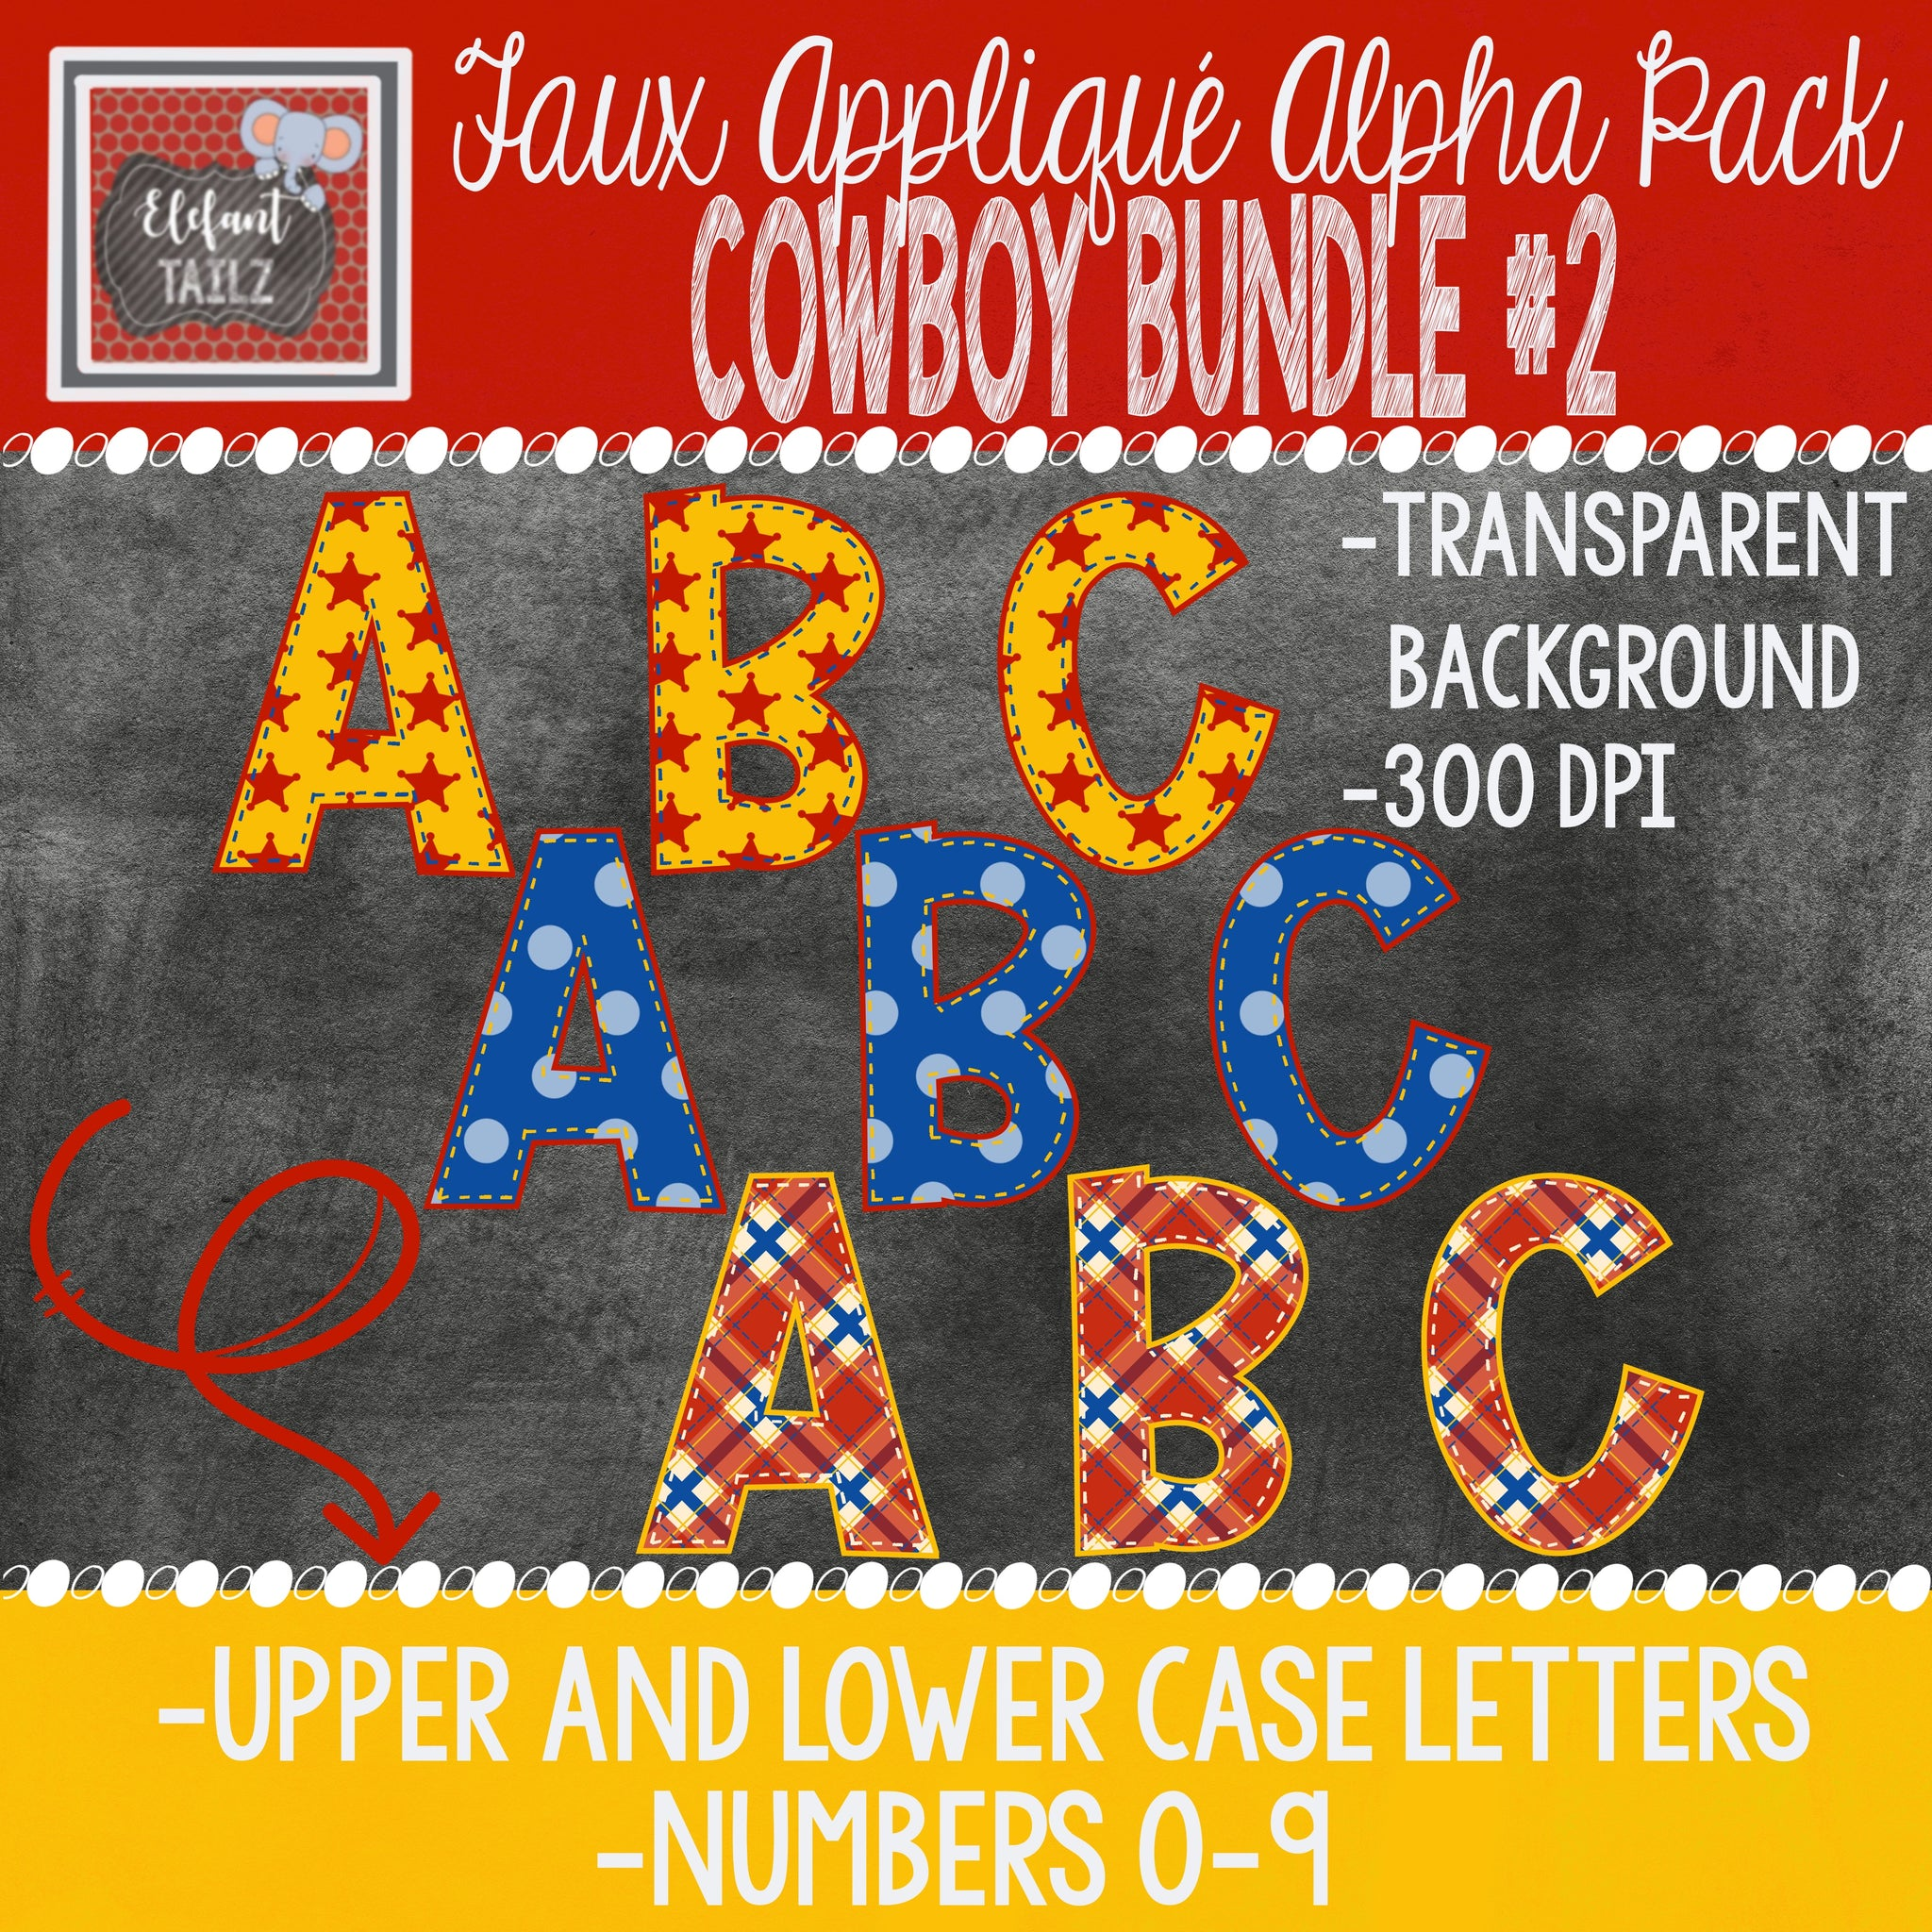 Alpha & Number Pack - Cowboy BUNDLE #2